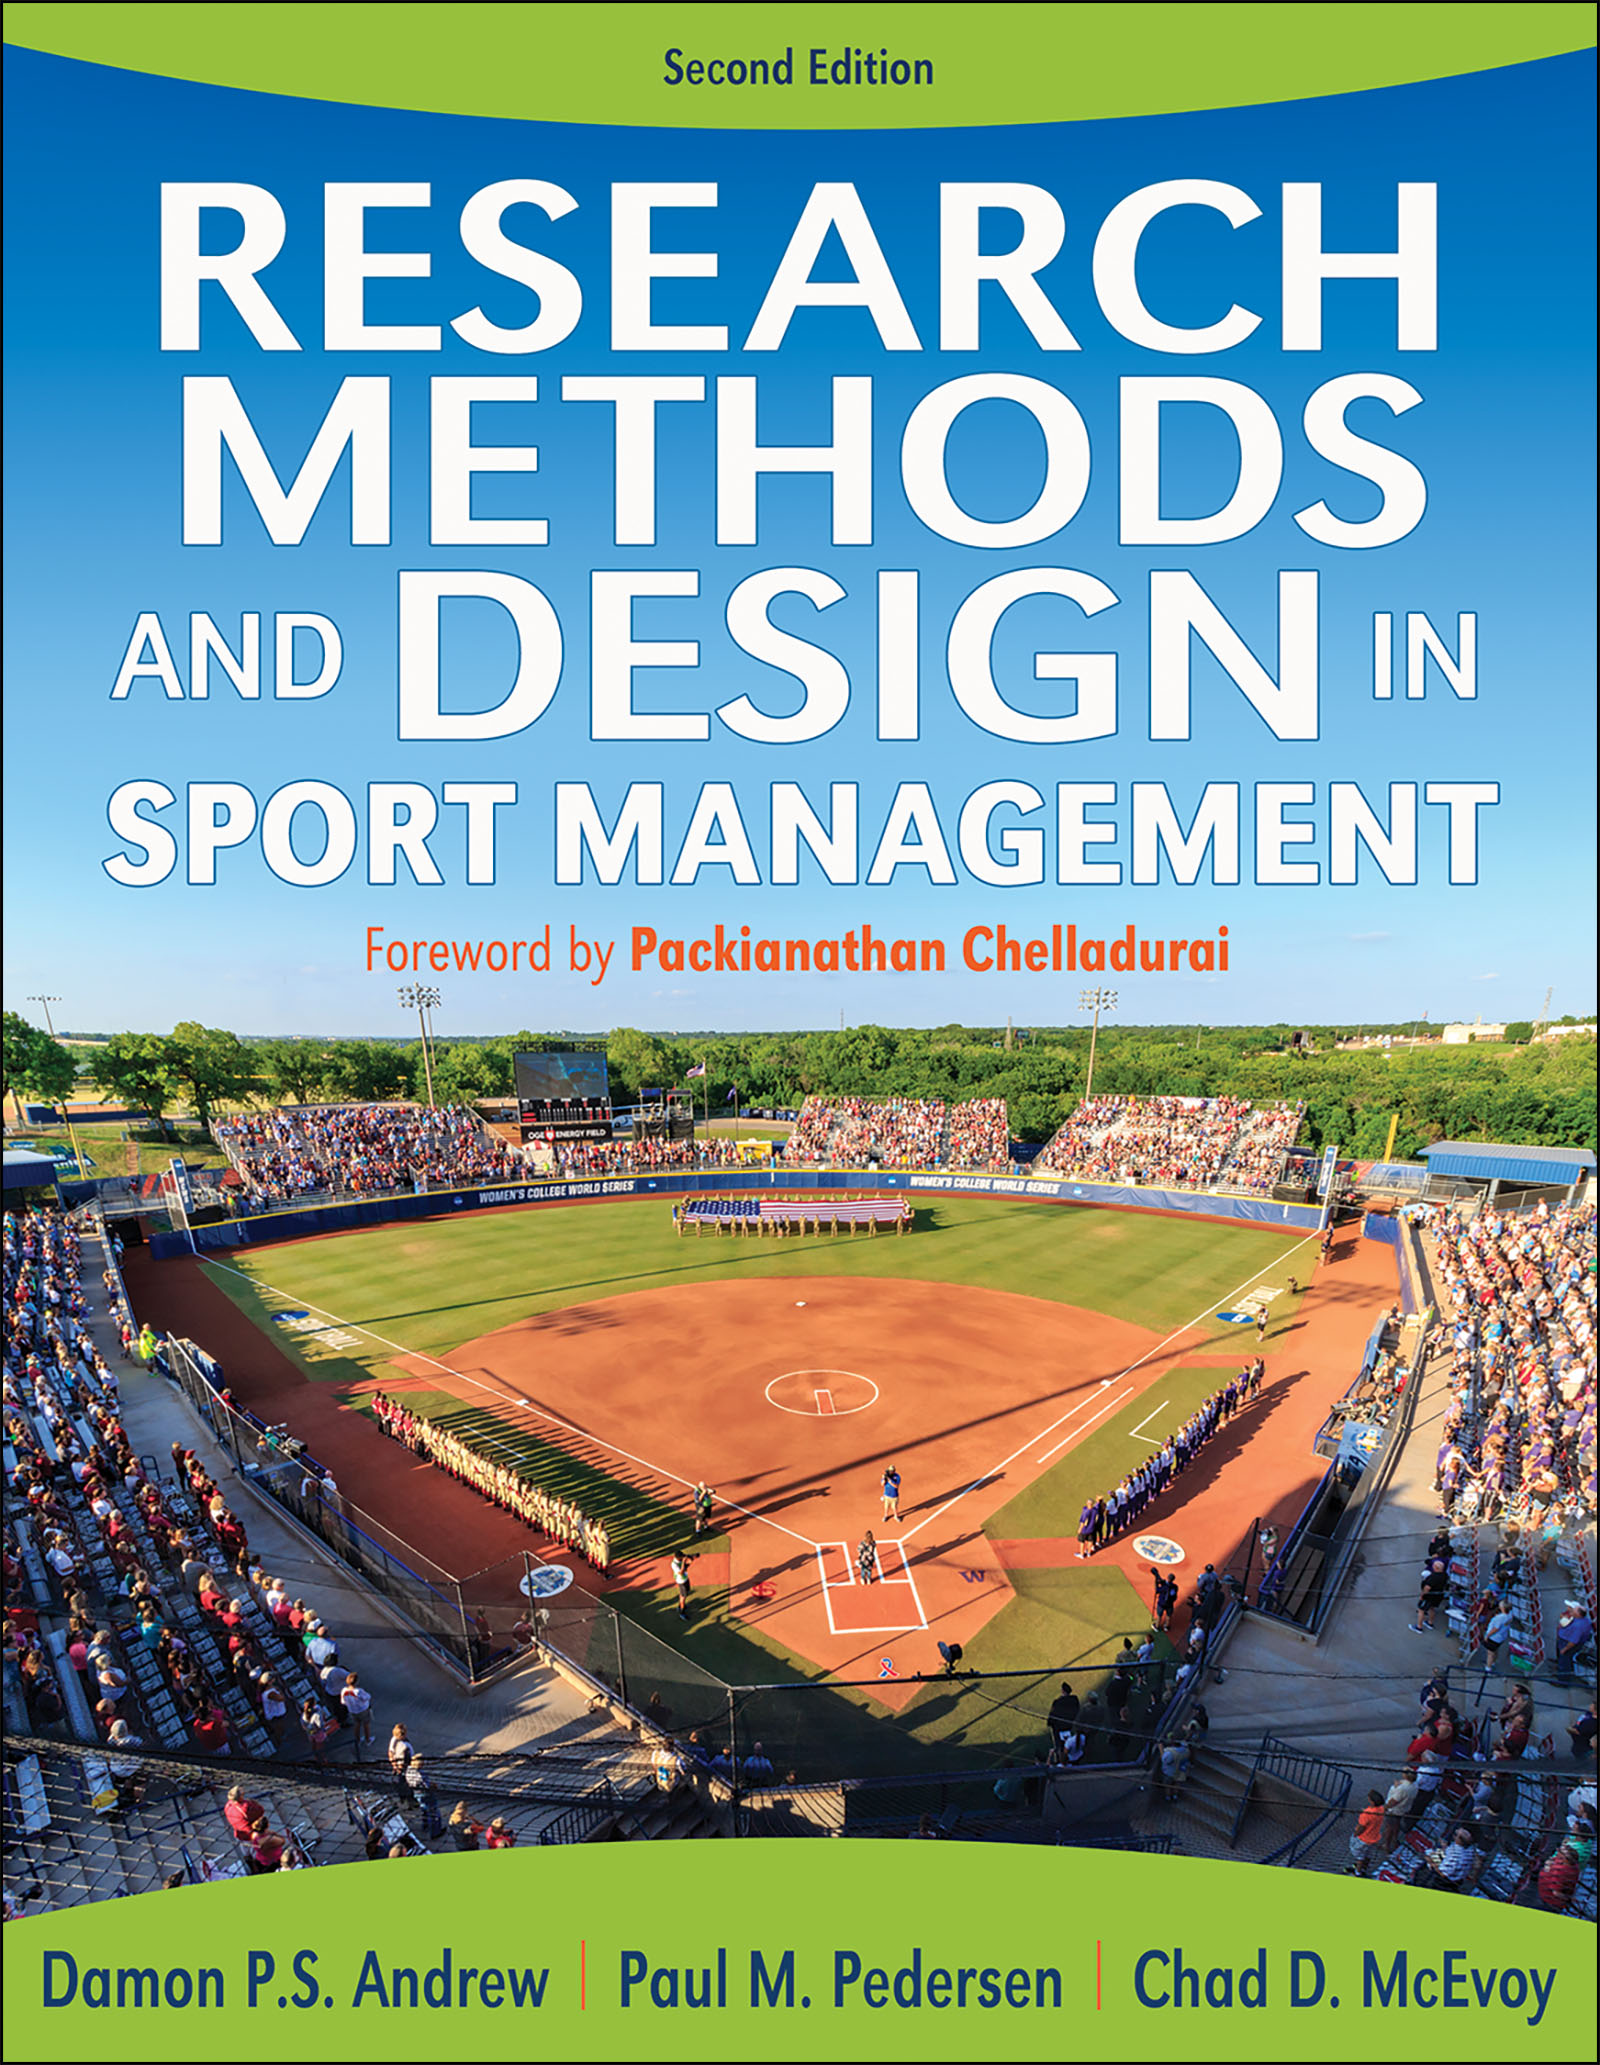 Research Methods and Design in Sport Management 2nd Edition With Web Resource